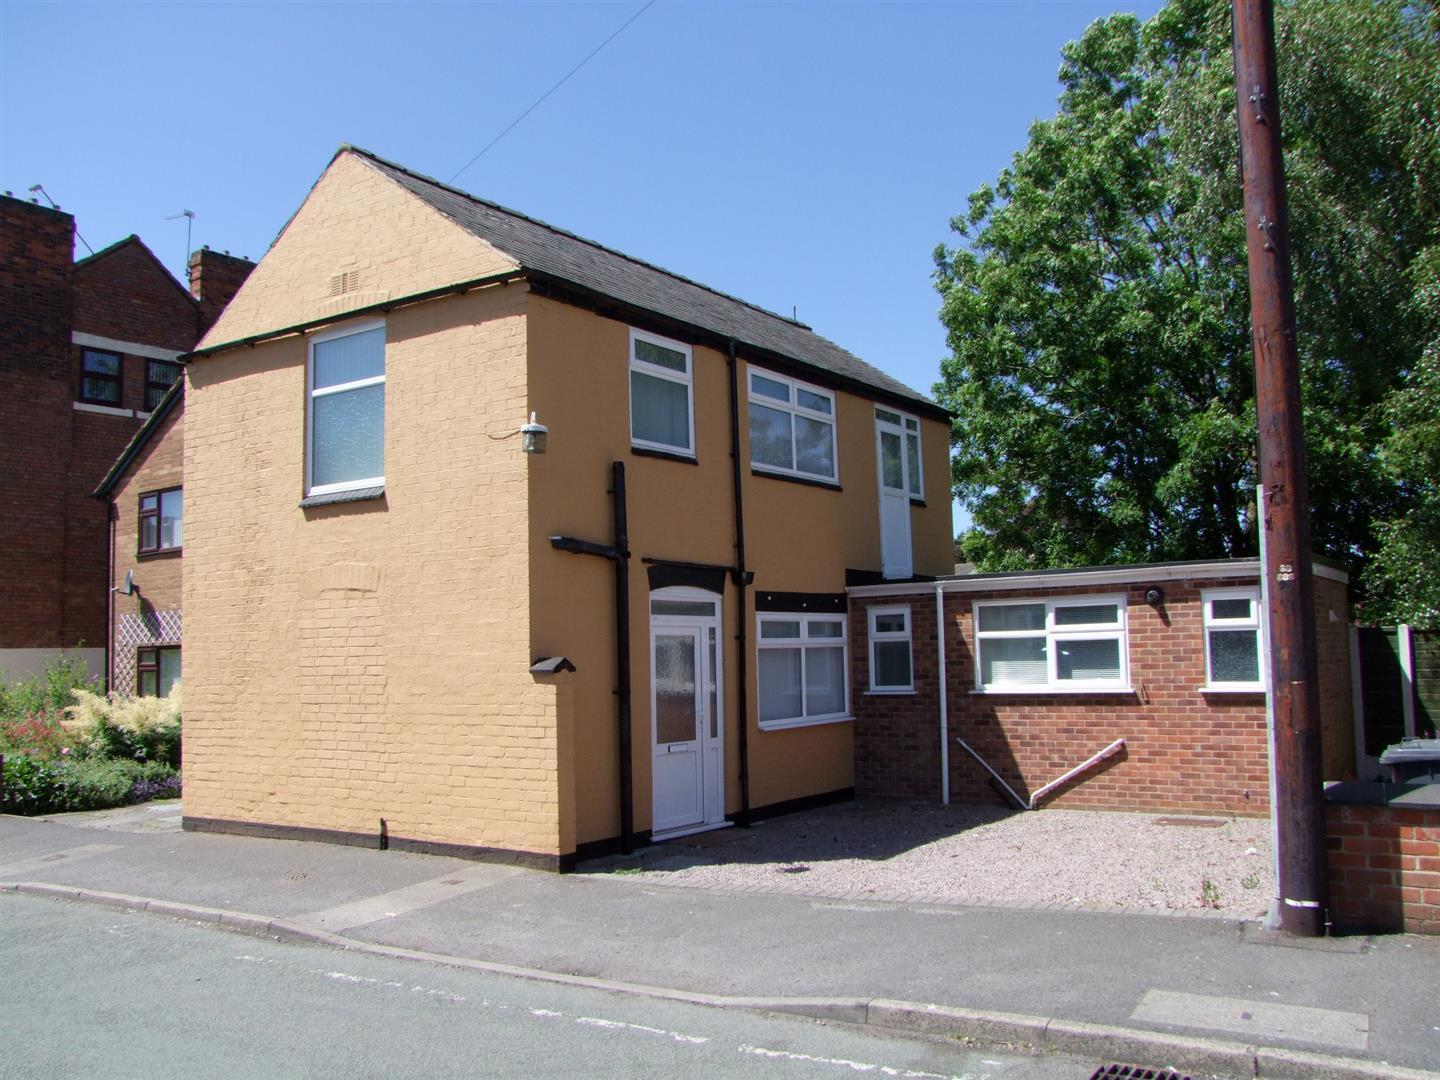 2 Bedrooms Property for sale in Blackpool Street, Burton-On-Trent